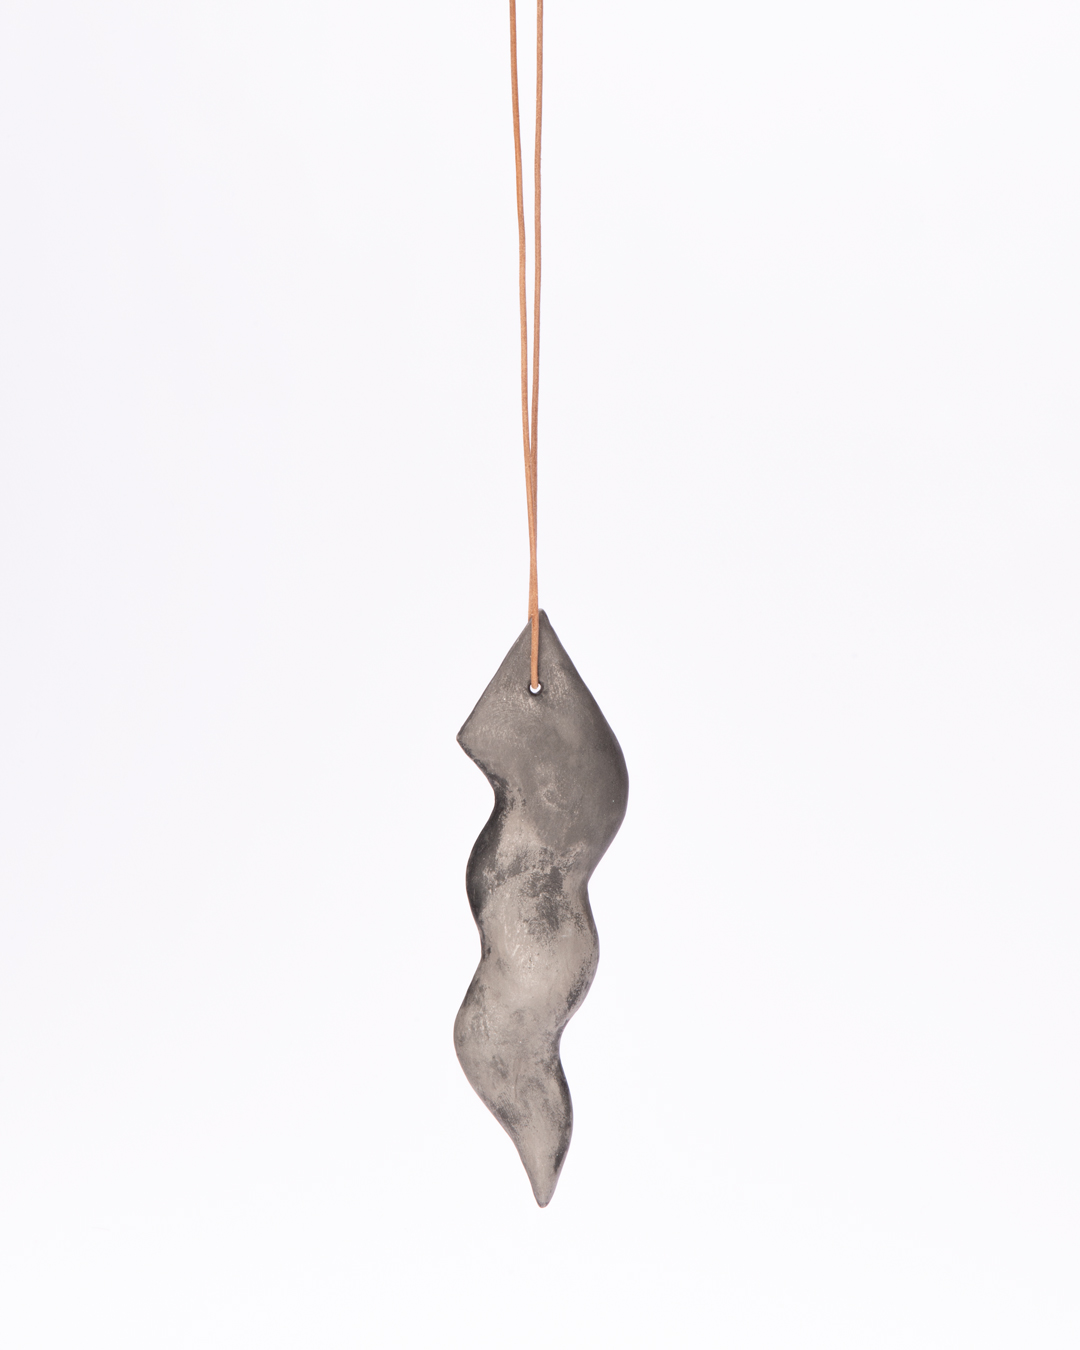 Julia Walter, untitled, 2020, pendant, wood, minerals, pigments, acrylic paint, leather string, 180 x 50 x 10 mm € 485